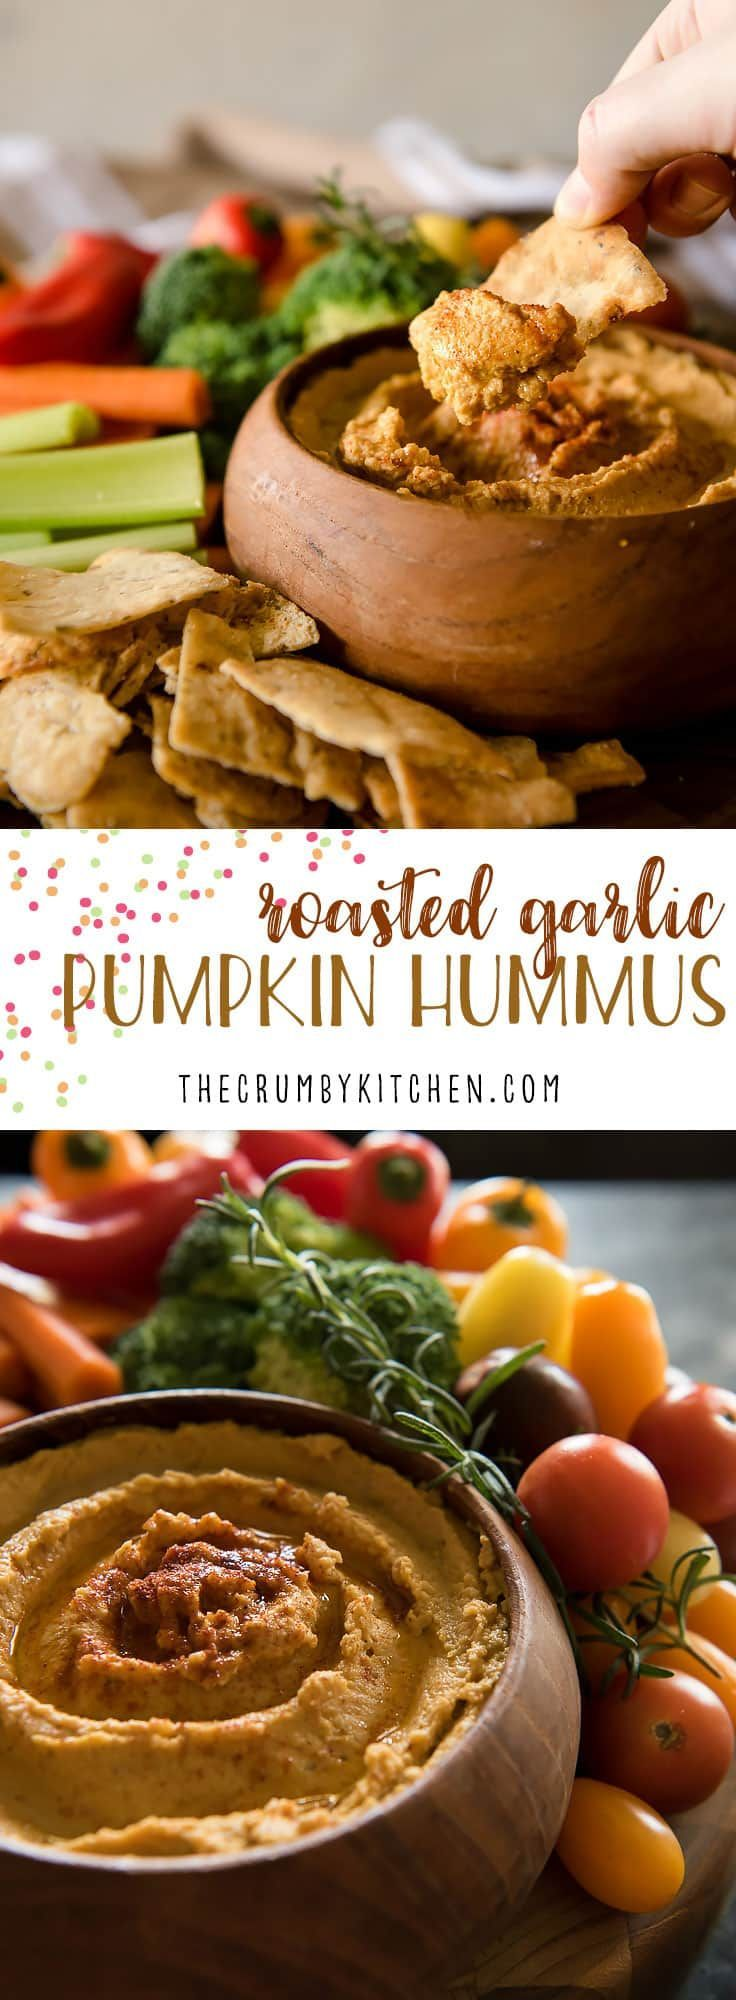 Everything you love about your favorite hummus with a little bit of fall added in - this savory Roasted Garlic Pumpkin Hummus takes just 5 minutes to make, and will please every palate! #hummus #pumpkin #roastedgarlic #appetizer #recipe #holiday #party